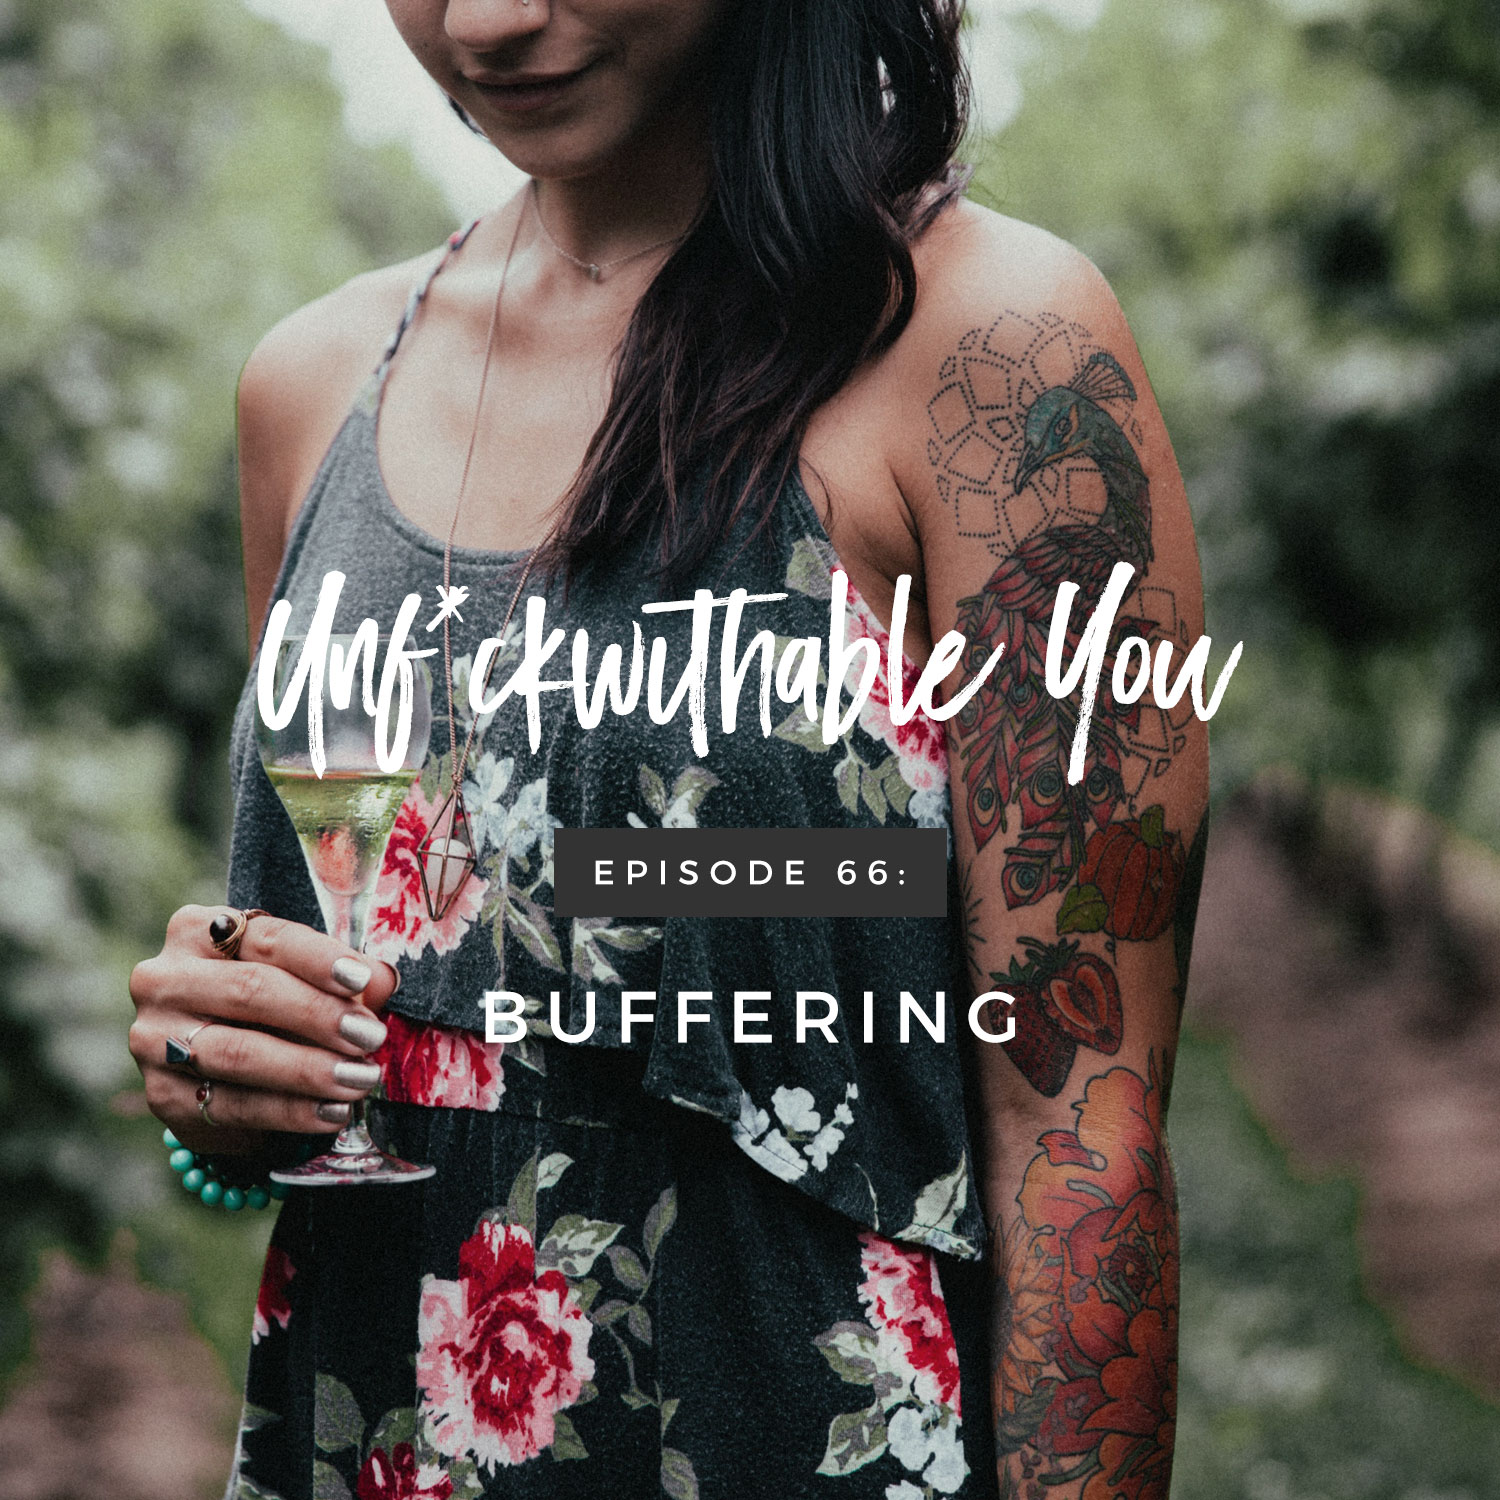 Unf*ckwithable You Episode 66: Buffering